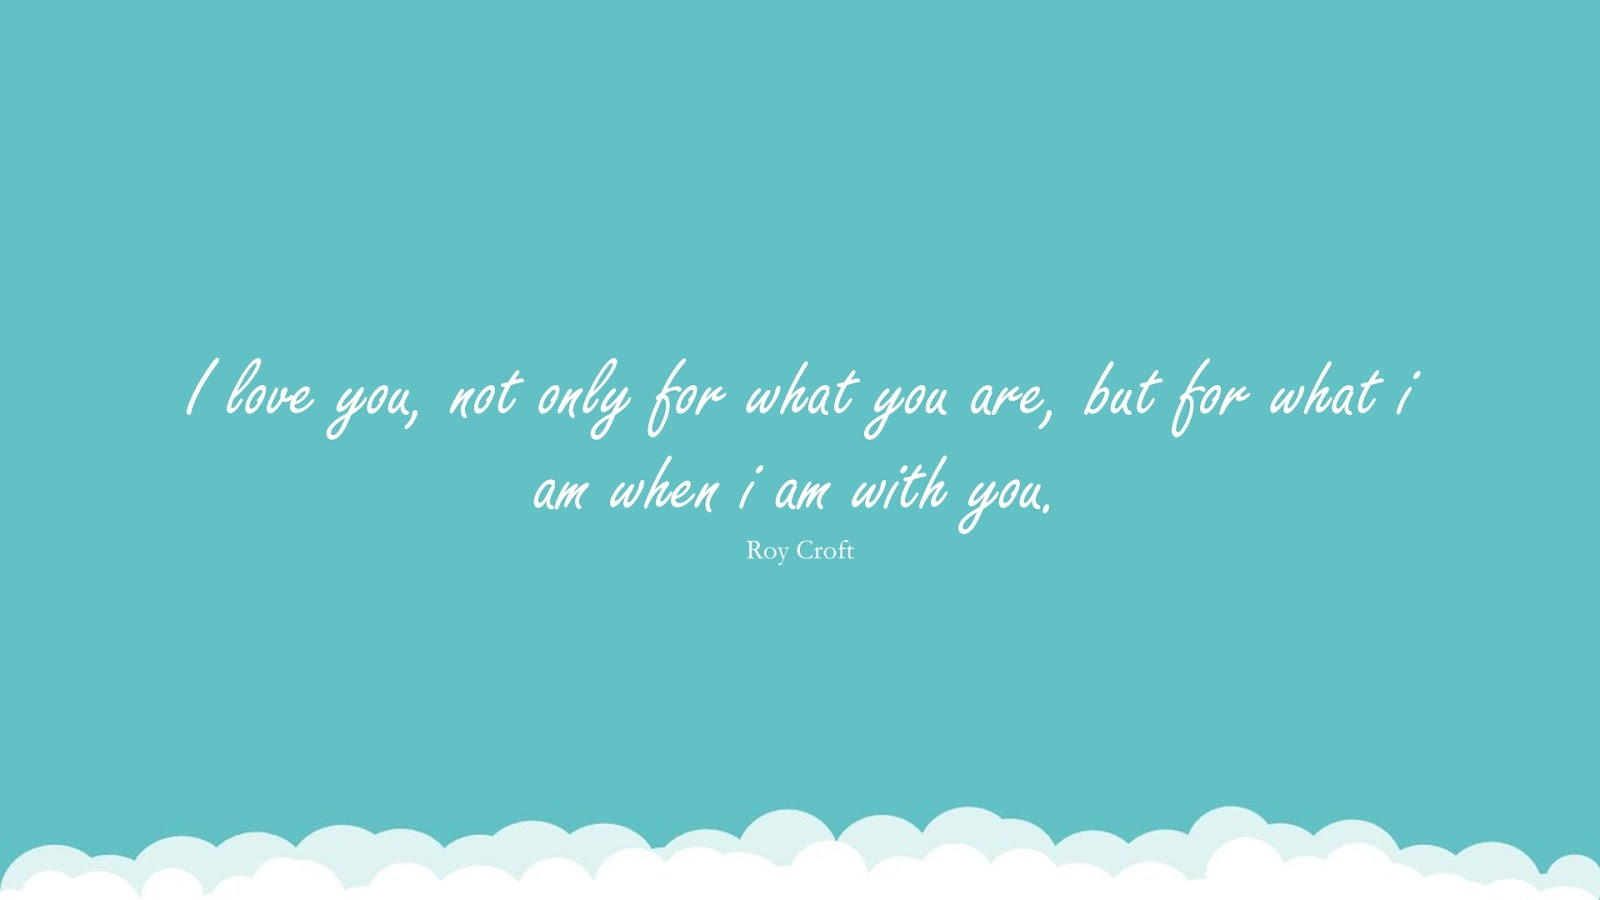 I love you, not only for what you are, but for what i am when i am with you. (Roy Croft);  #LoveQuotes